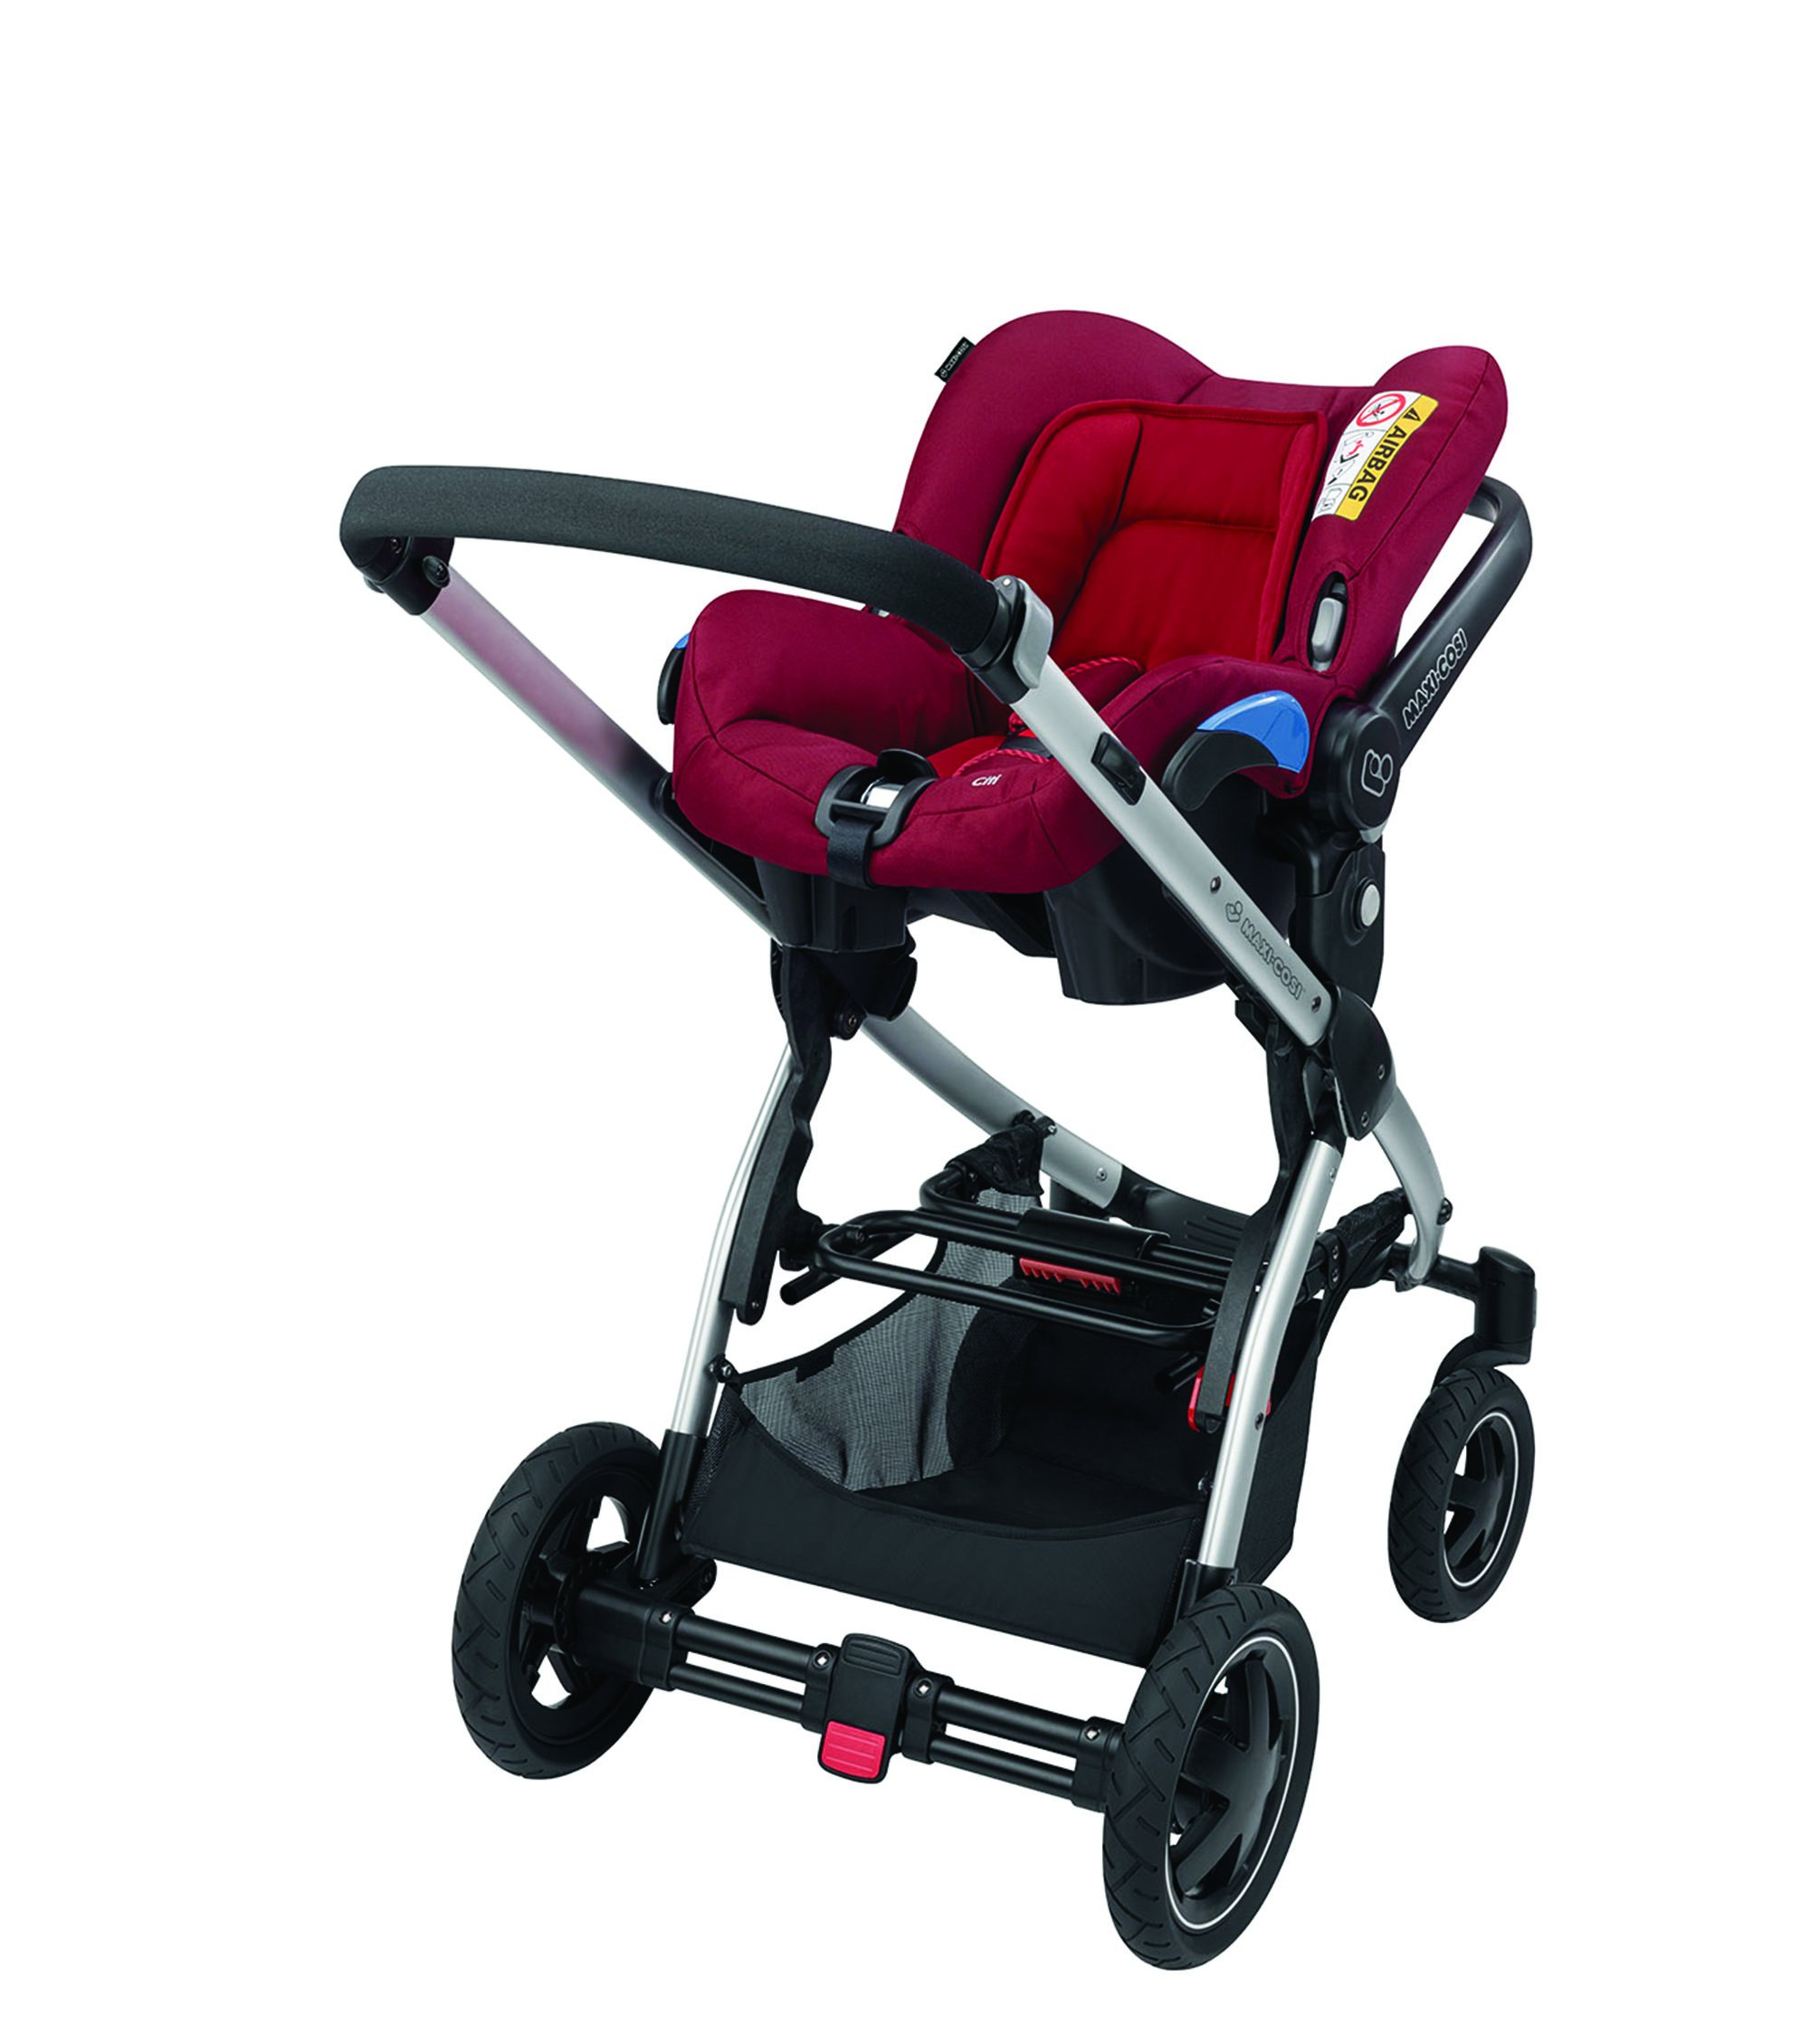 Maxi-Cosi Kinderautositz Citi Robin Red Maxi-Cosi Side protection system, guarantees optimal protection in the event of a side impact Lightweight, light weight and ergonomically shaped safety bar for use as carrying handle Practical travel system 11